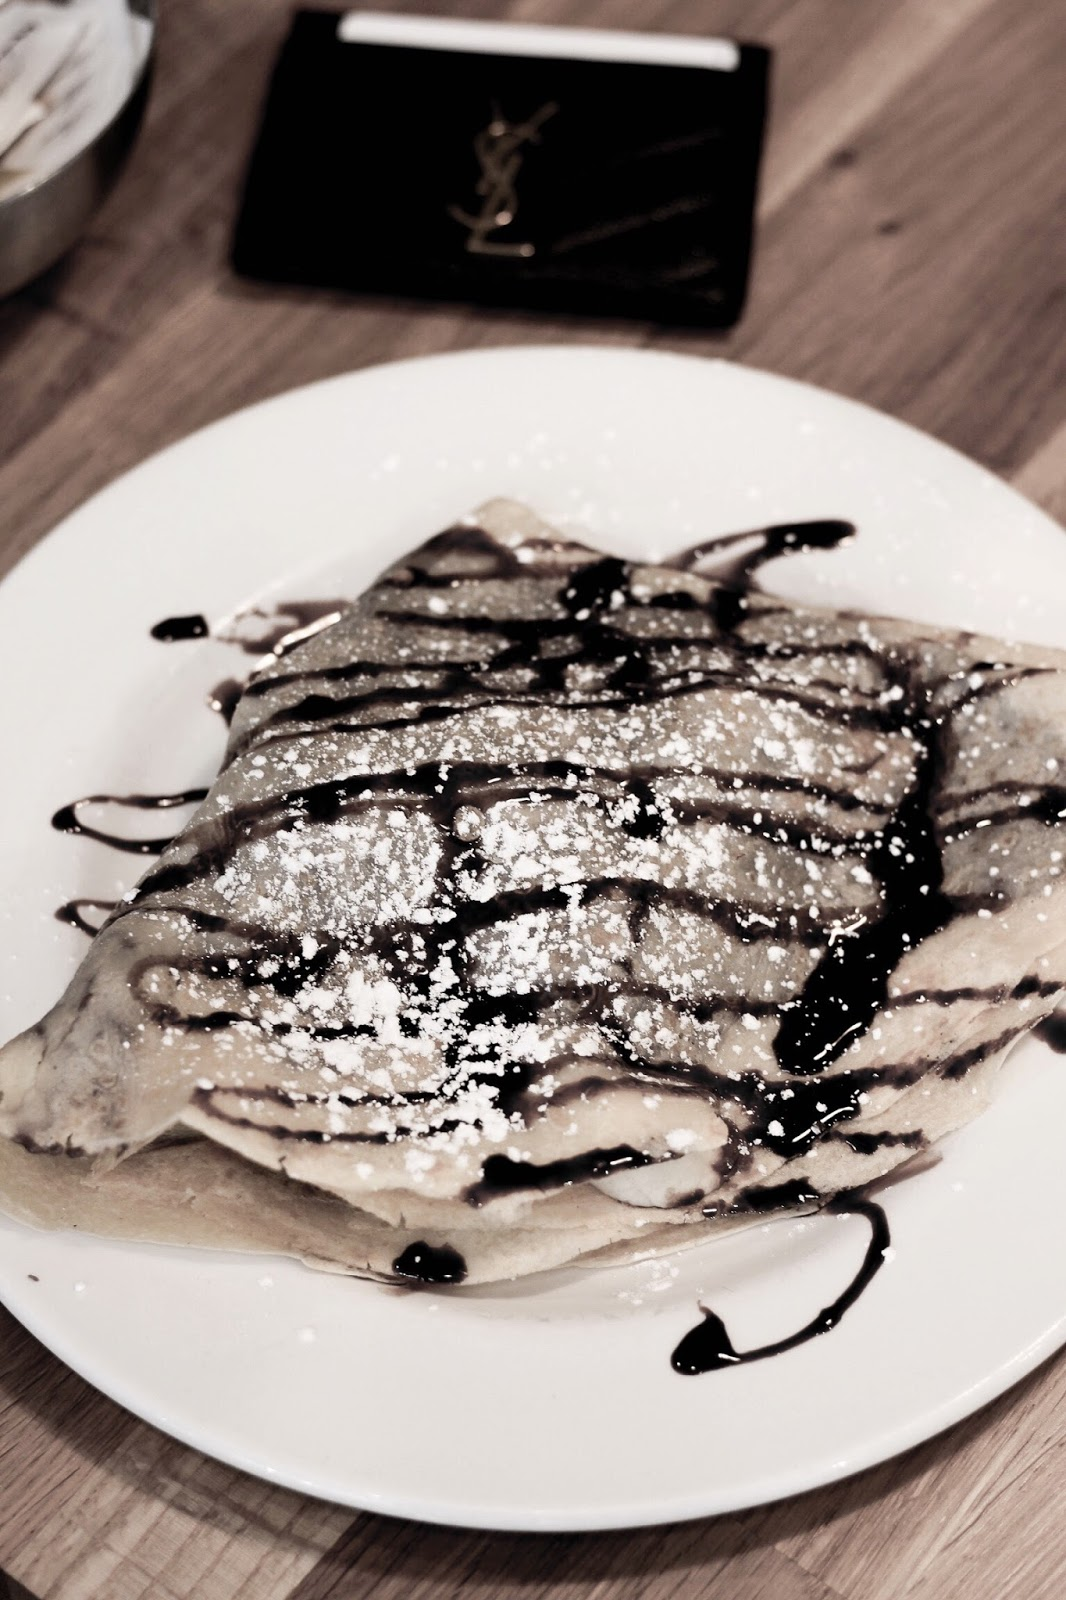 Nutella Crepe at Benets Cafe Cambridge